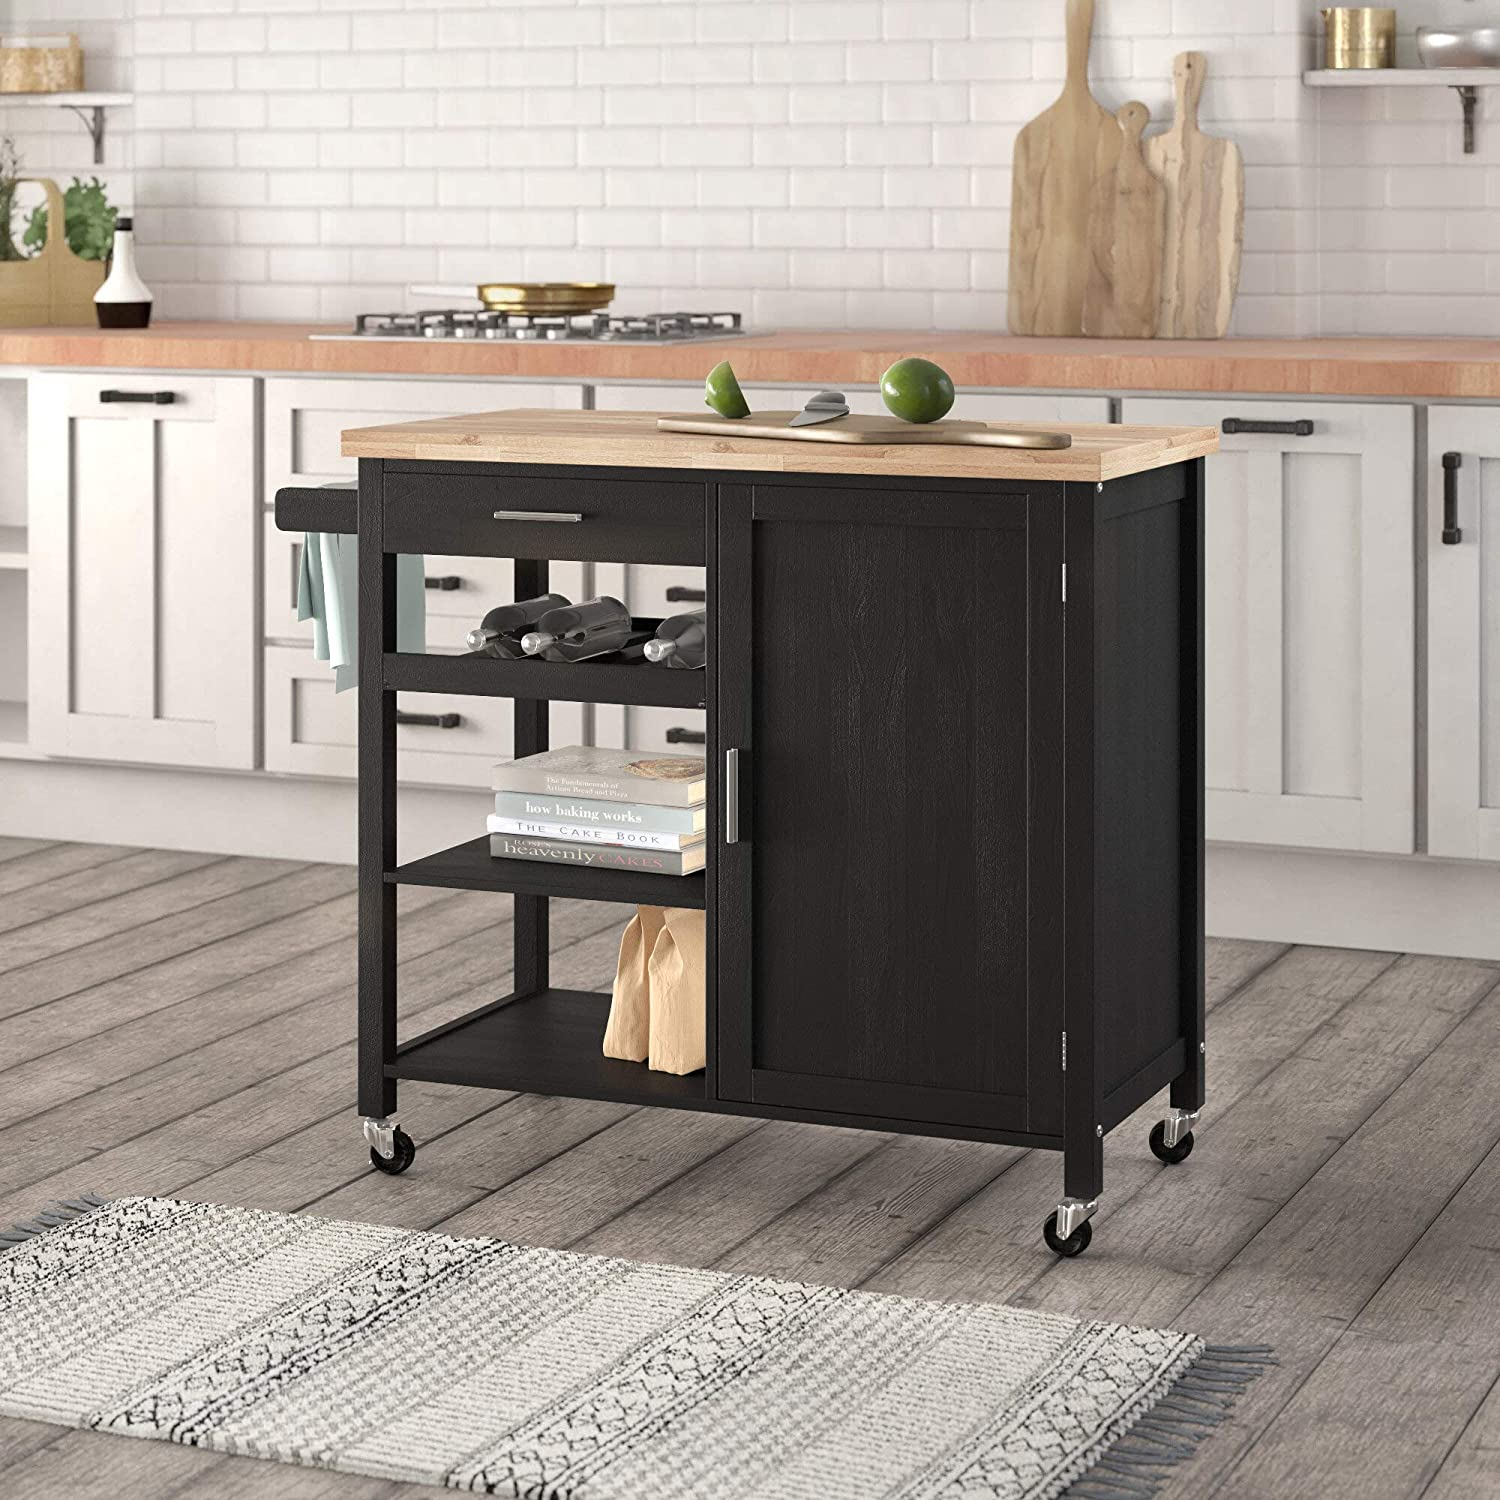 Belleze Wood Top Multi Storage Cabinet Rolling Kitchen Island Table Cart With Wheels Black Amazon Co Uk Diy Tools